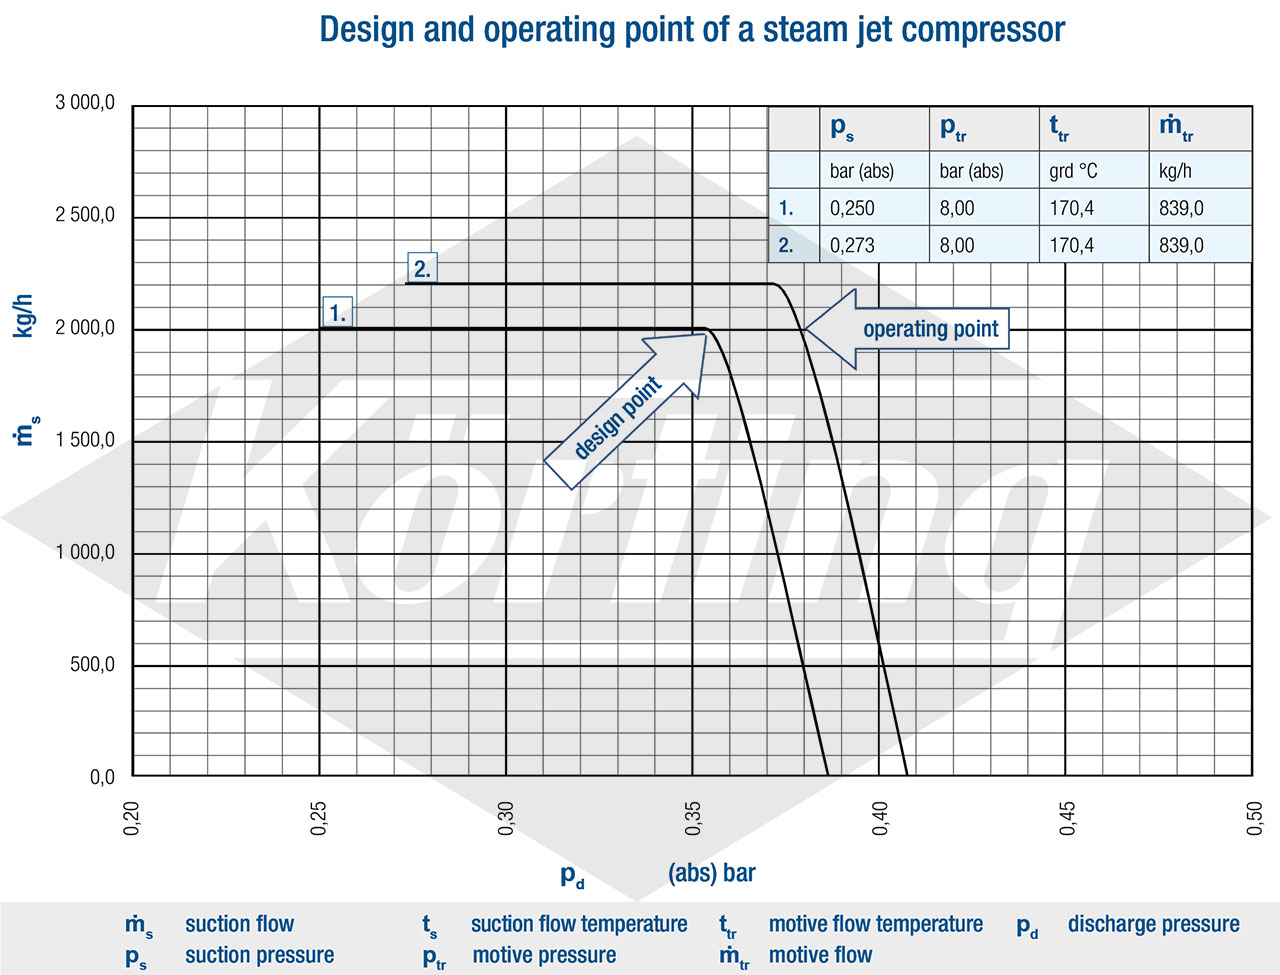 Design and operating point of a steam jet compressor